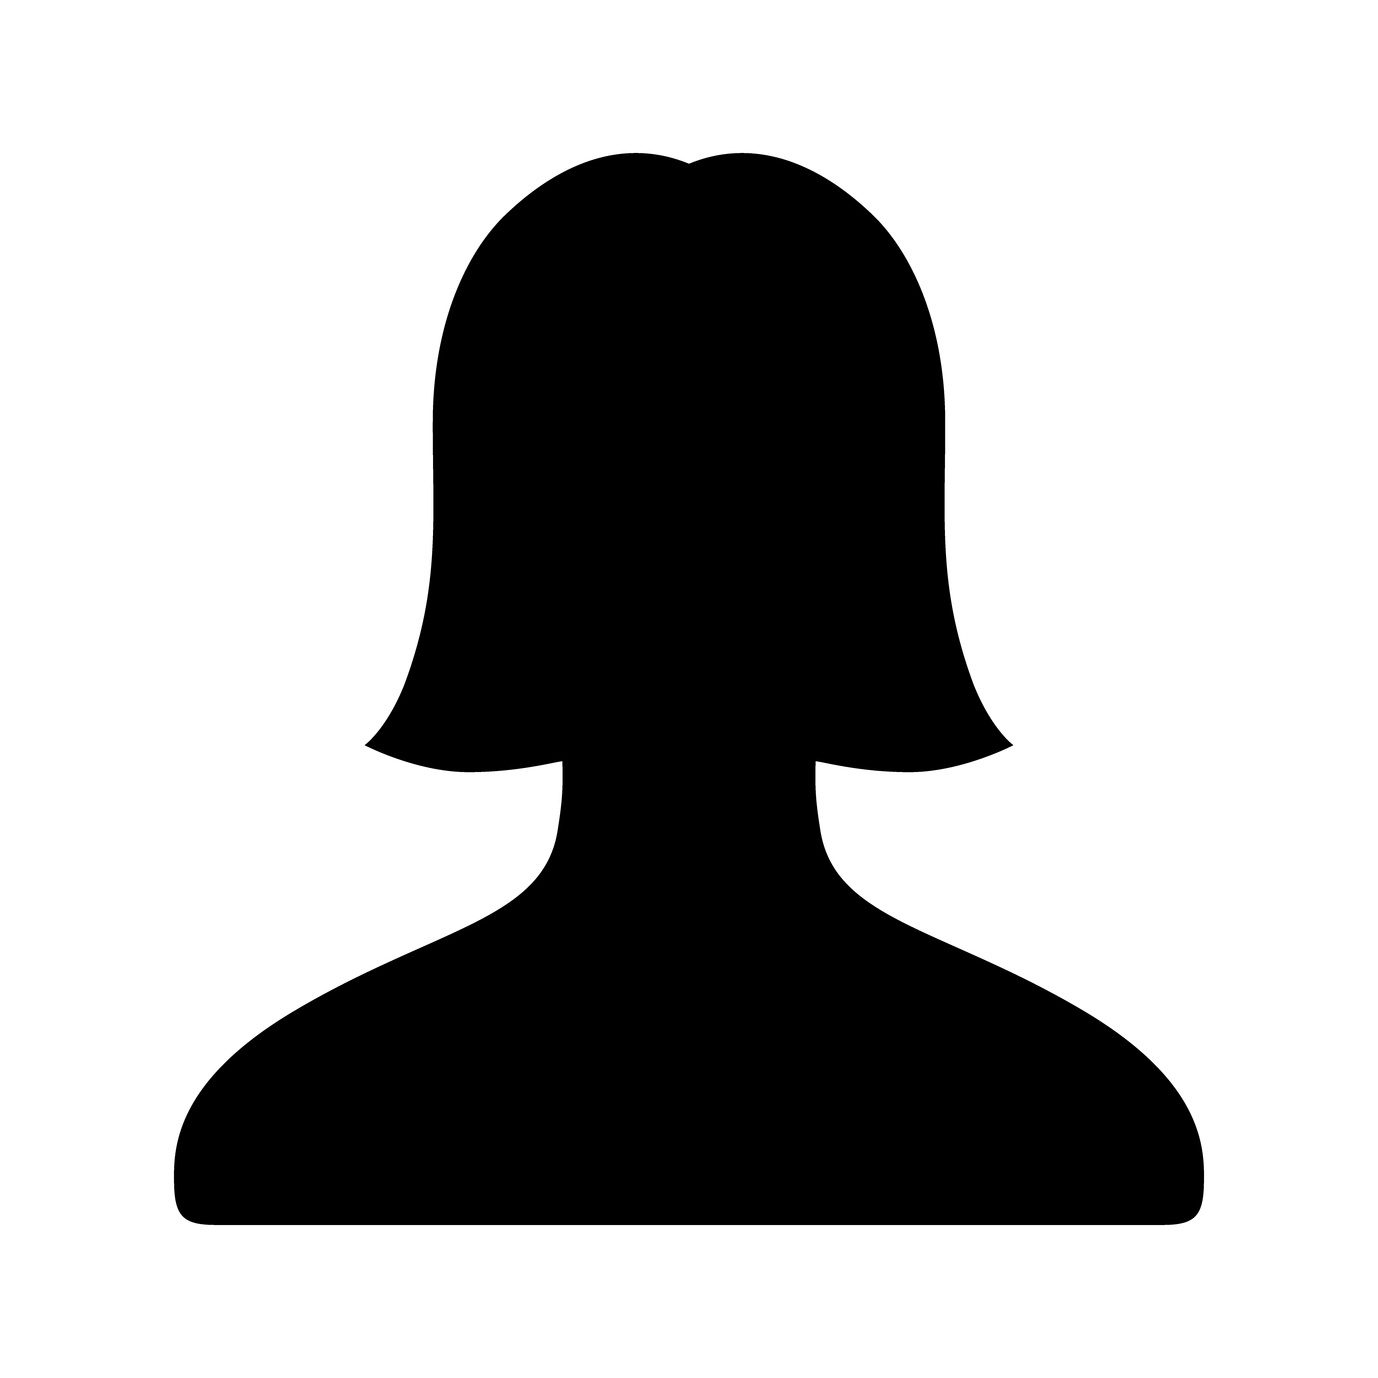 Female user account flat icon for apps and websites